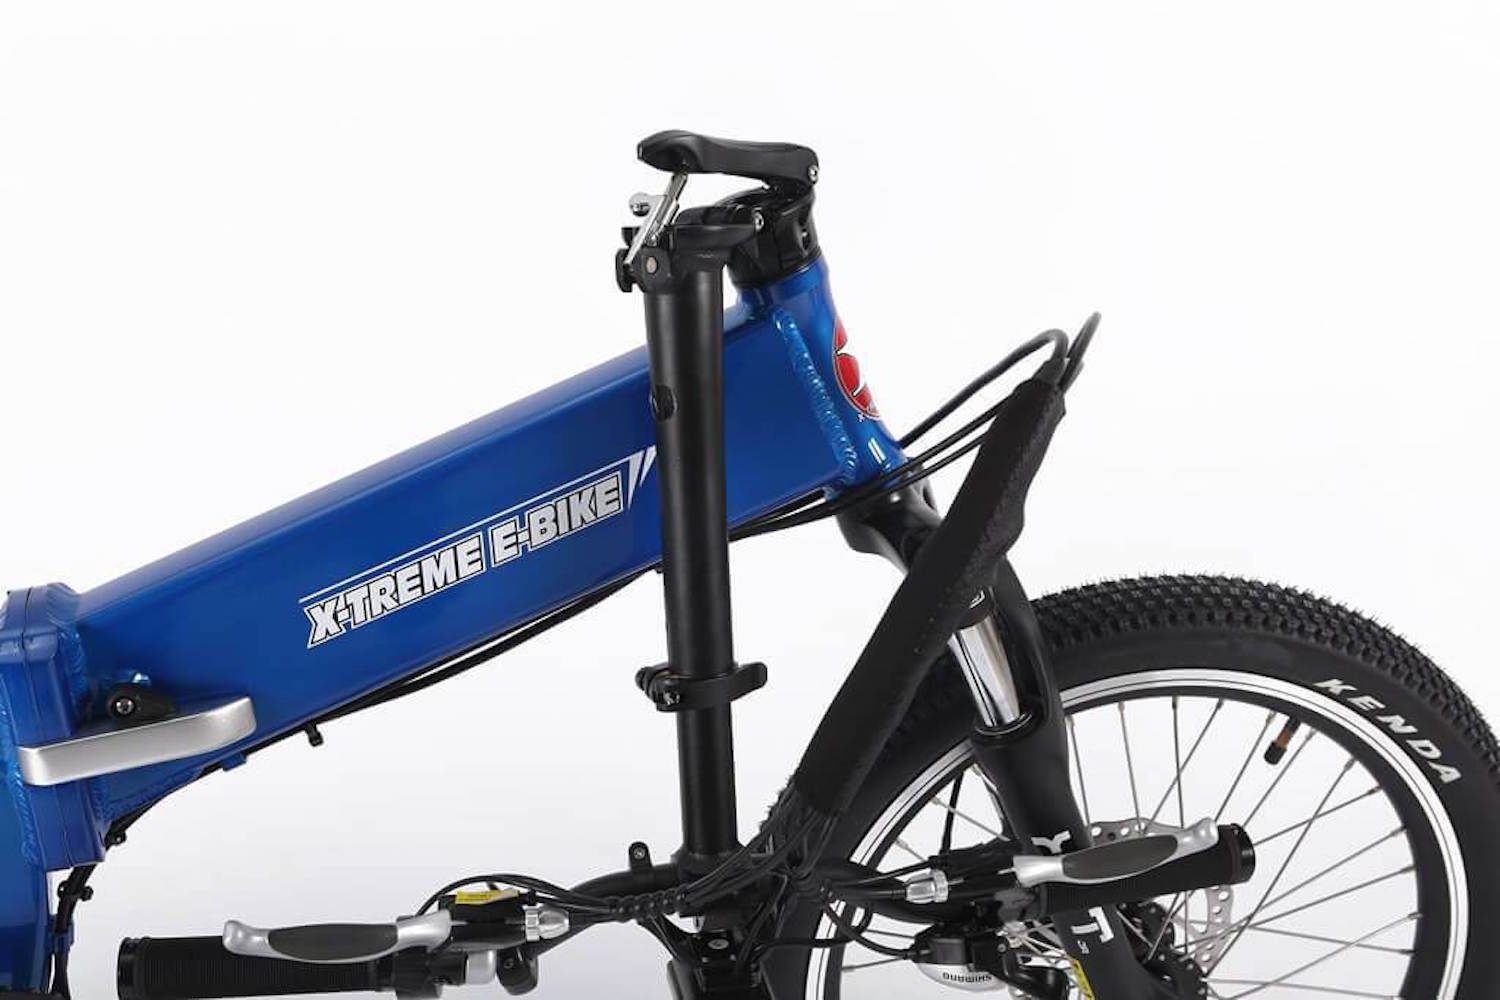 We distribute the X-Treme E-Bike brand of power-assisted electric bicycles, electric bikes, electric mountain bikes, electric beach cruisers and folding electric bicycles.  X-Treme offers a variety of quality model ebikes at affordable prices.